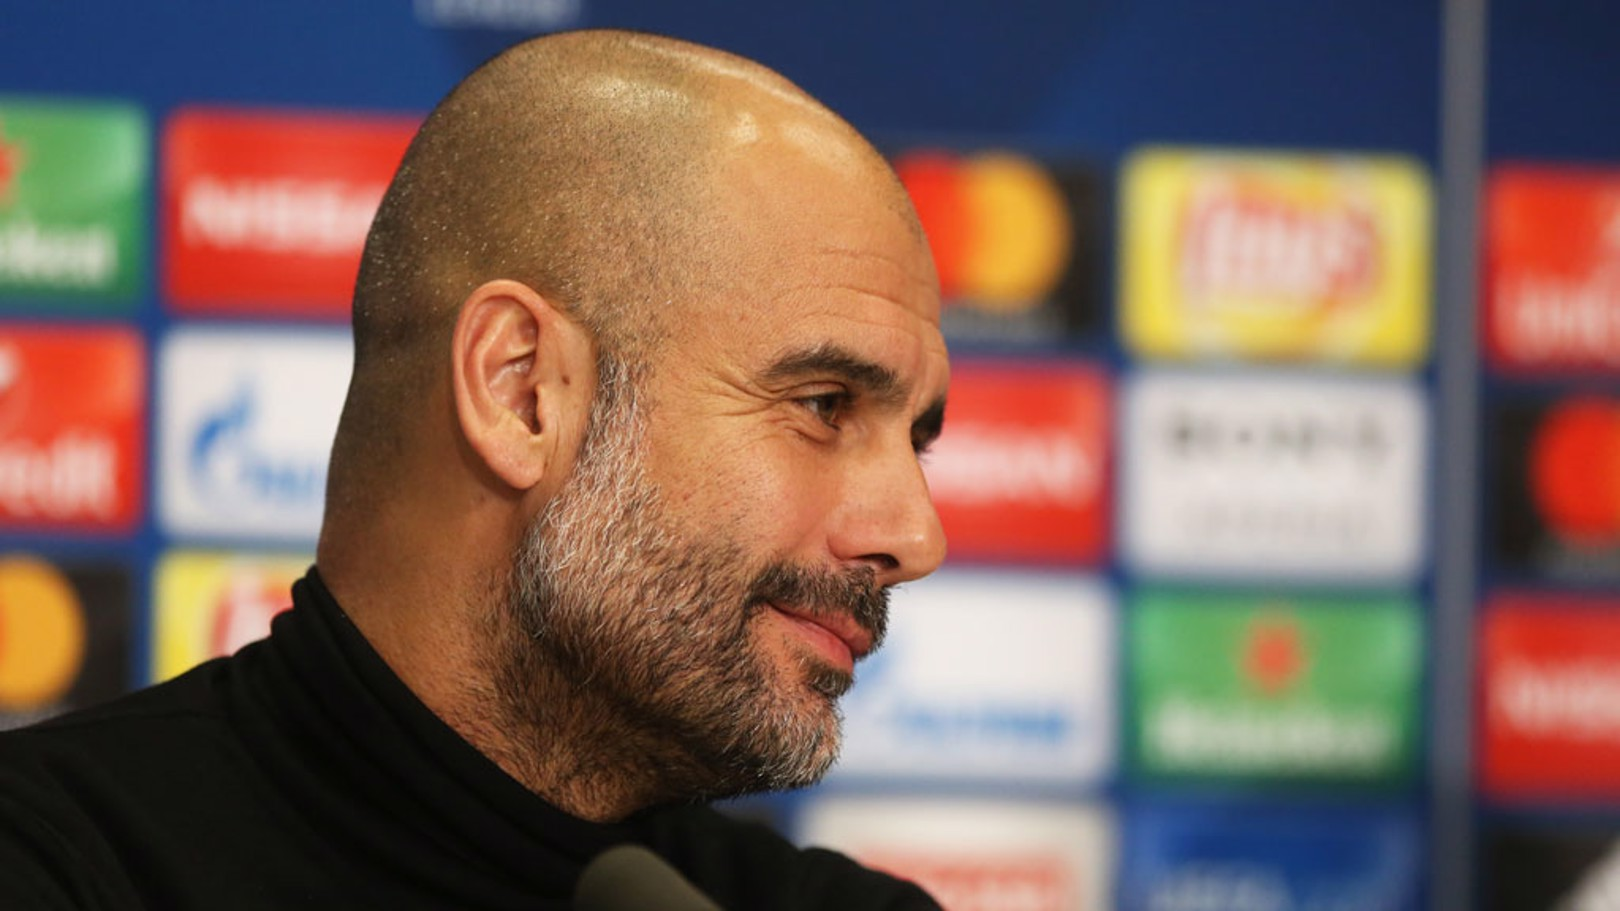 PREVIEW: Pep Guardiola chats to the media ahead of the Champions League game against FC Basel.